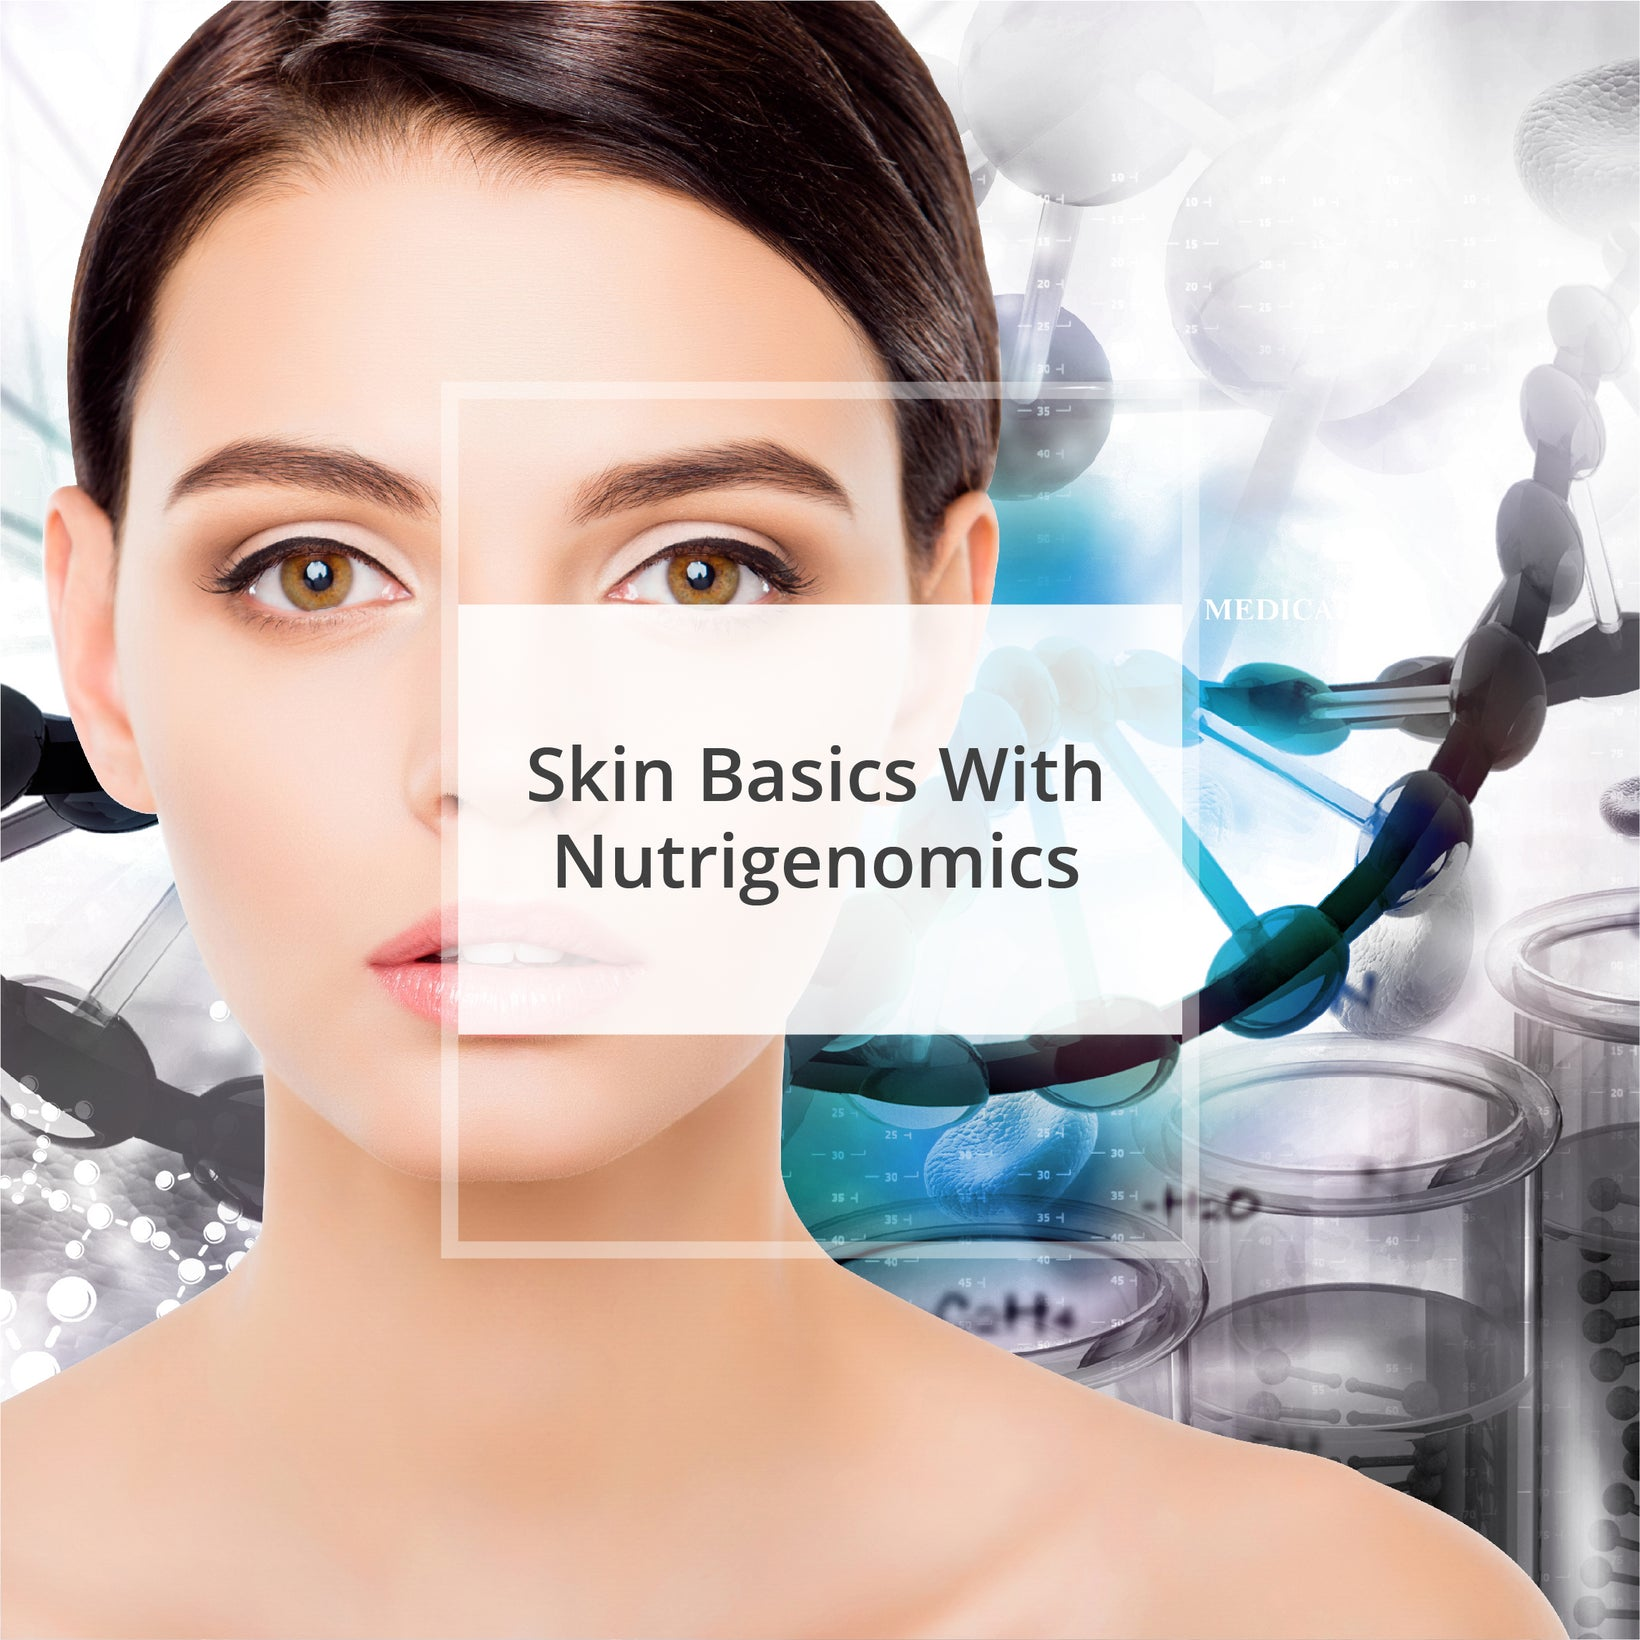 Skin Basics With Nutrigenomics (NEW)